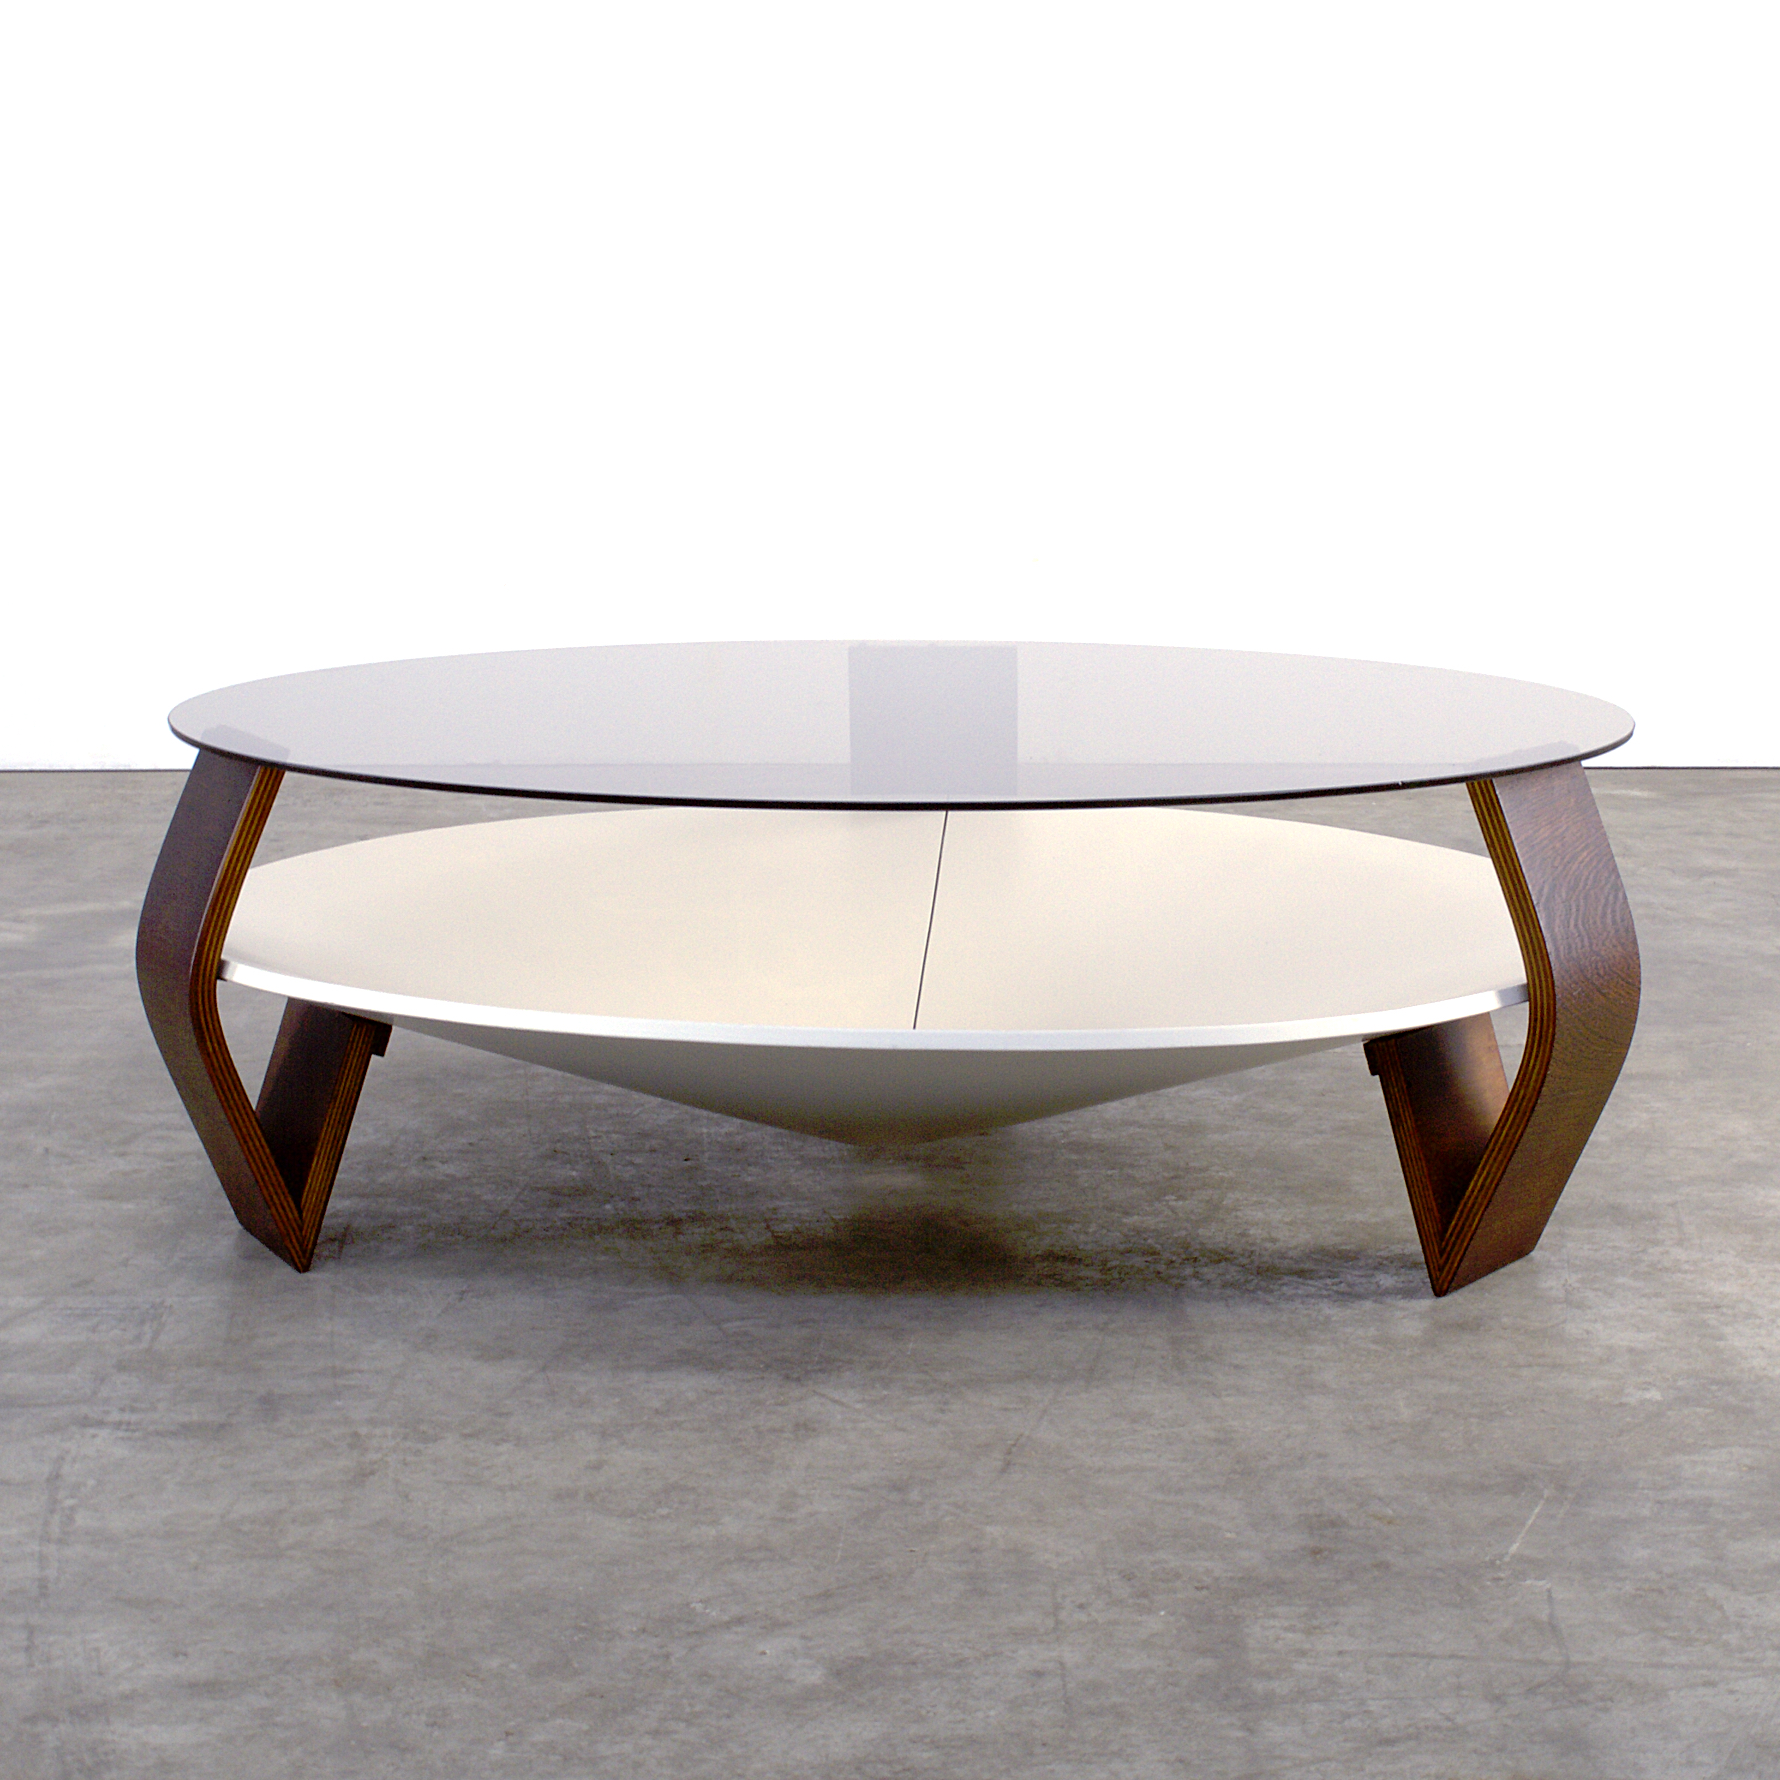 80s design round coffee table smoked glass barbmama - Round klapstoel ...